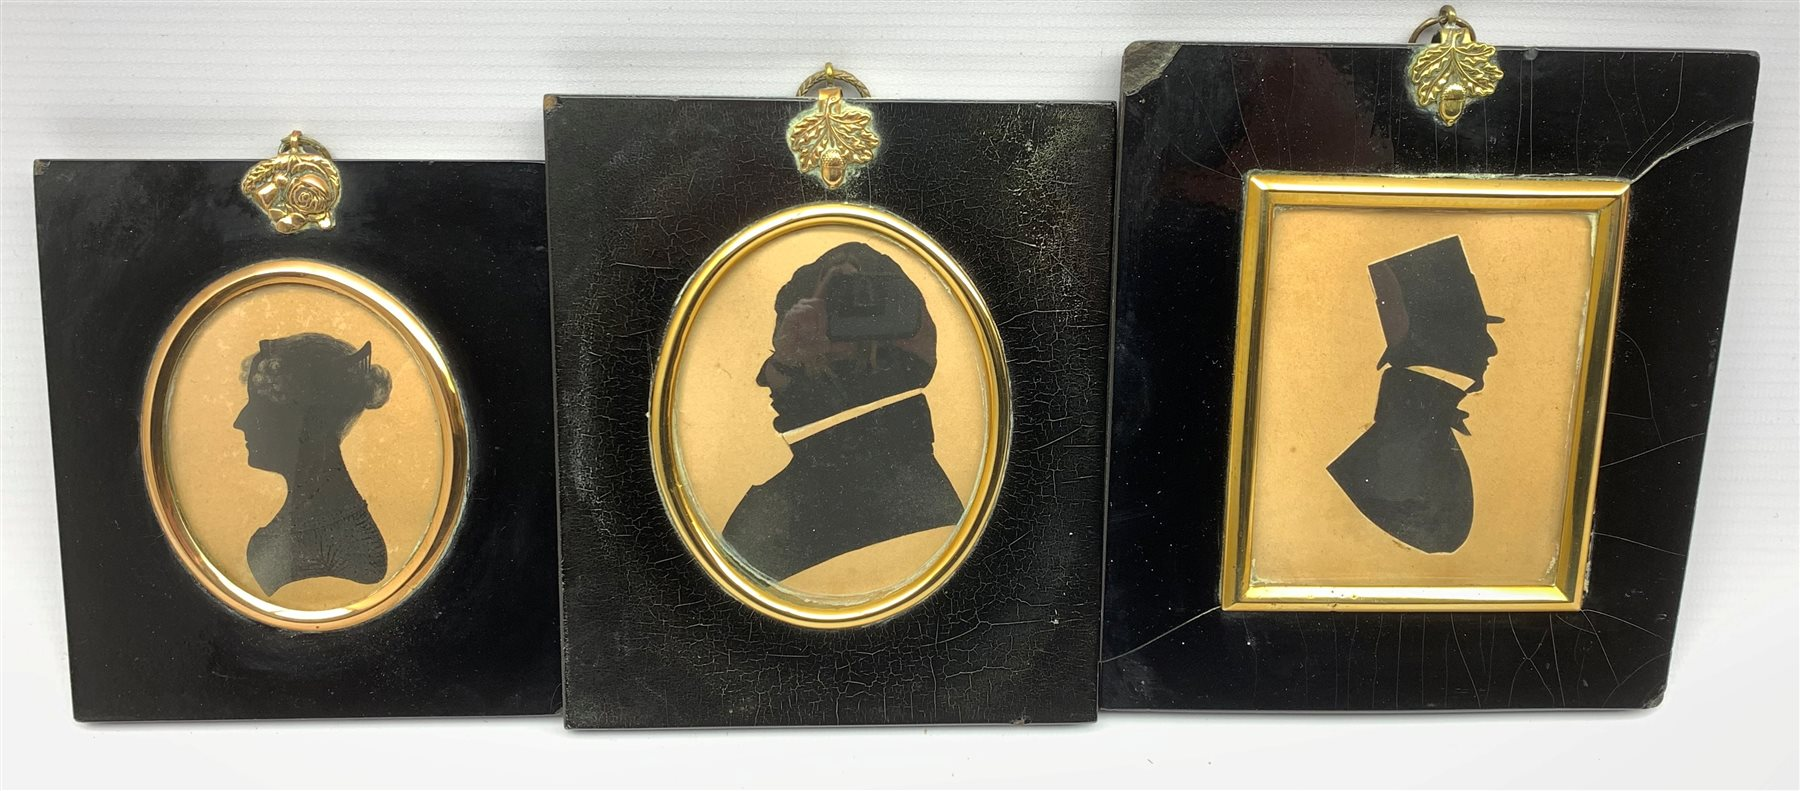 19th Century silhouette profile portrait of a gentleman wearing a top hat 9cm x 7cm another inscribe